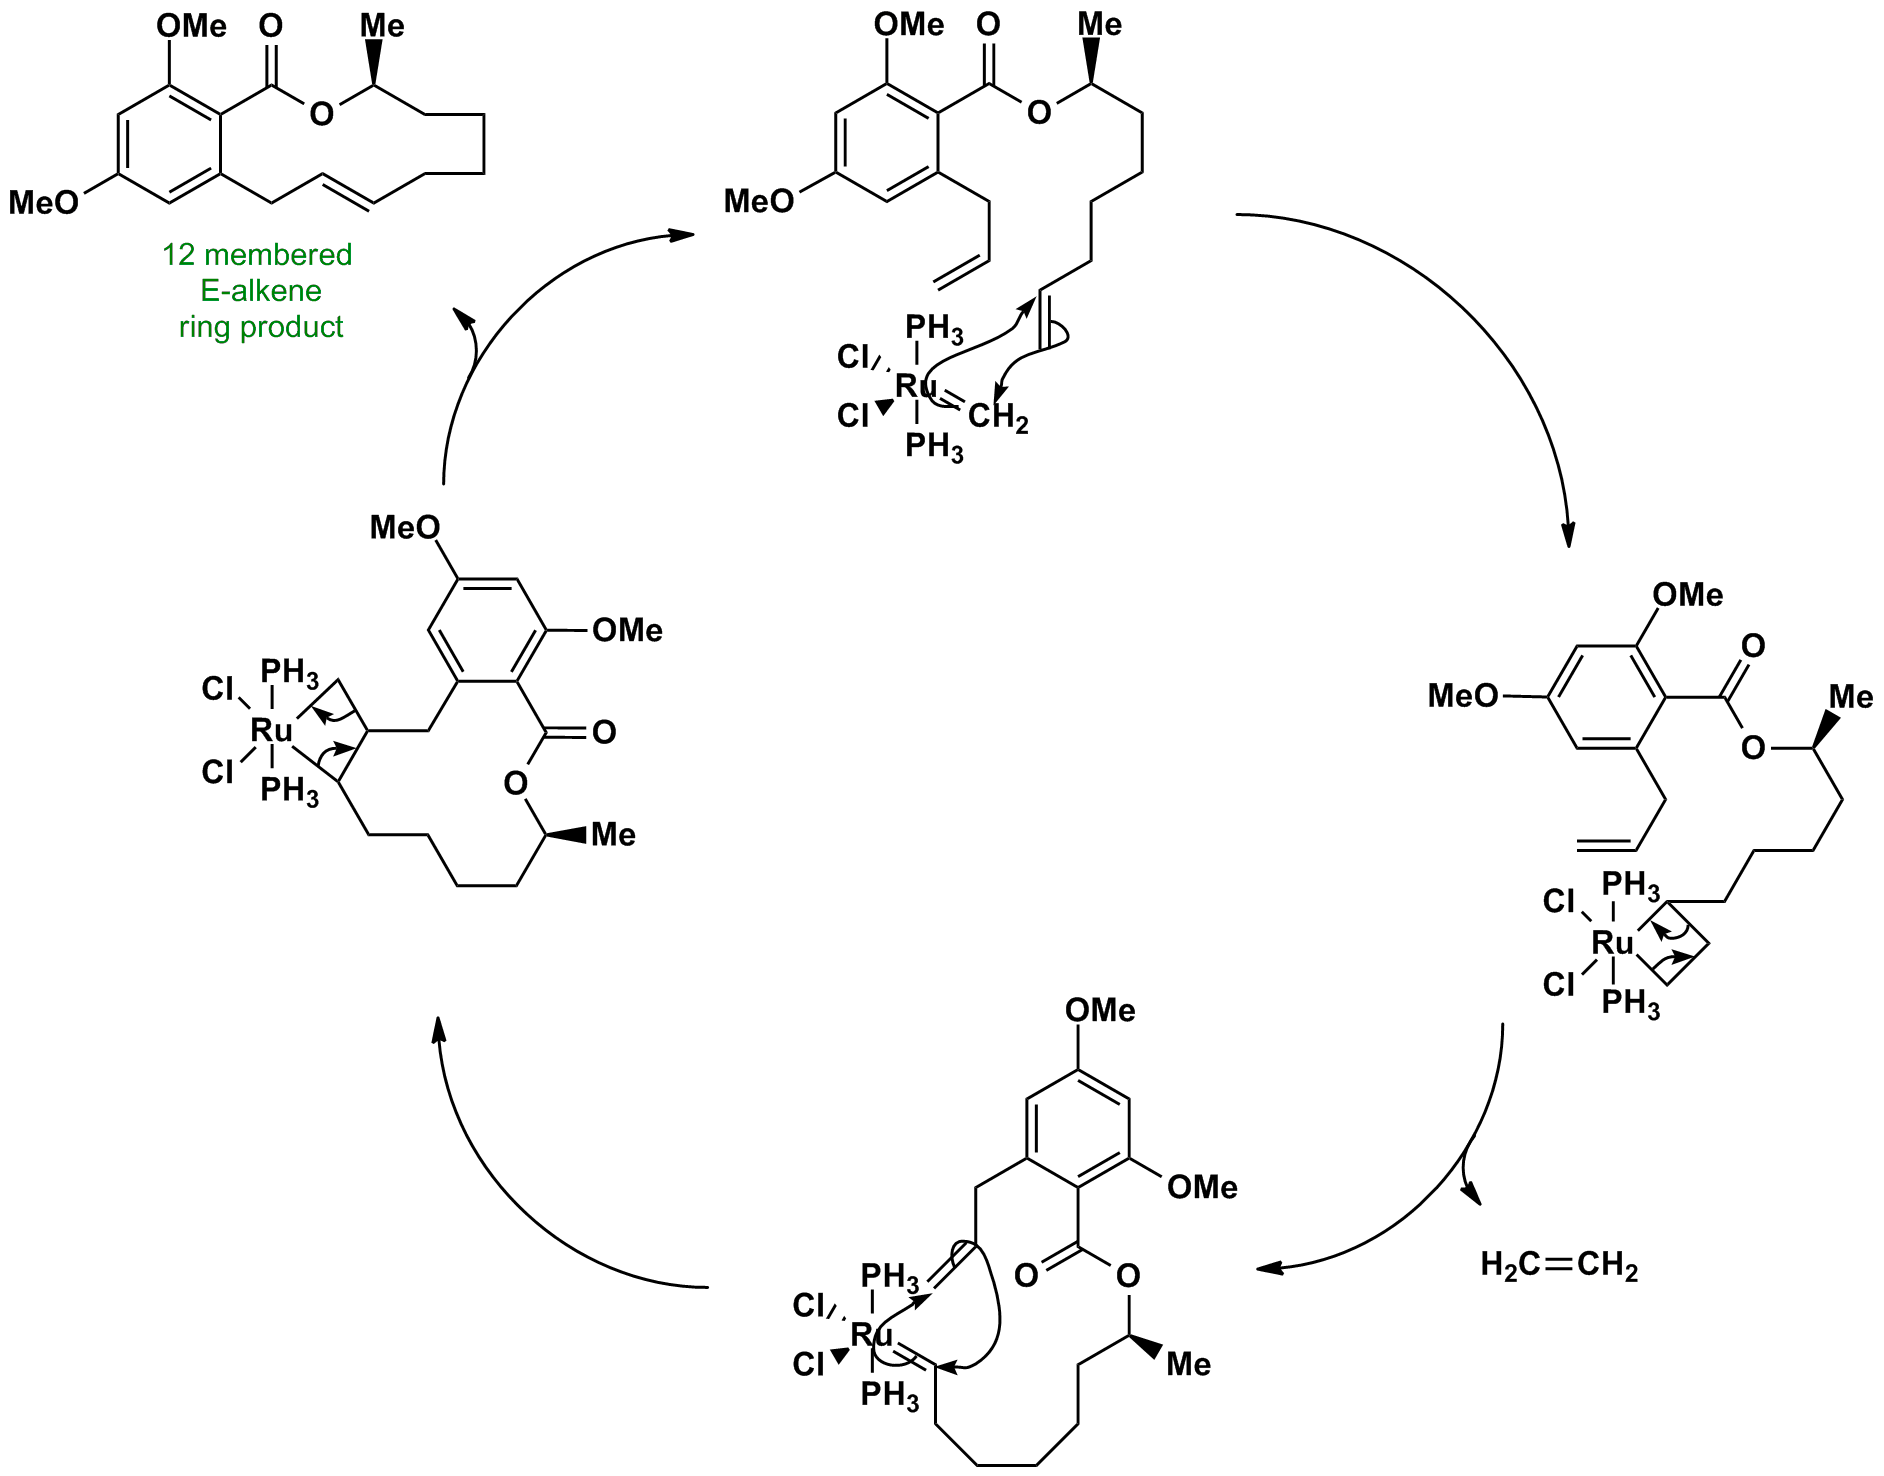 Olefin metathesis mechanism